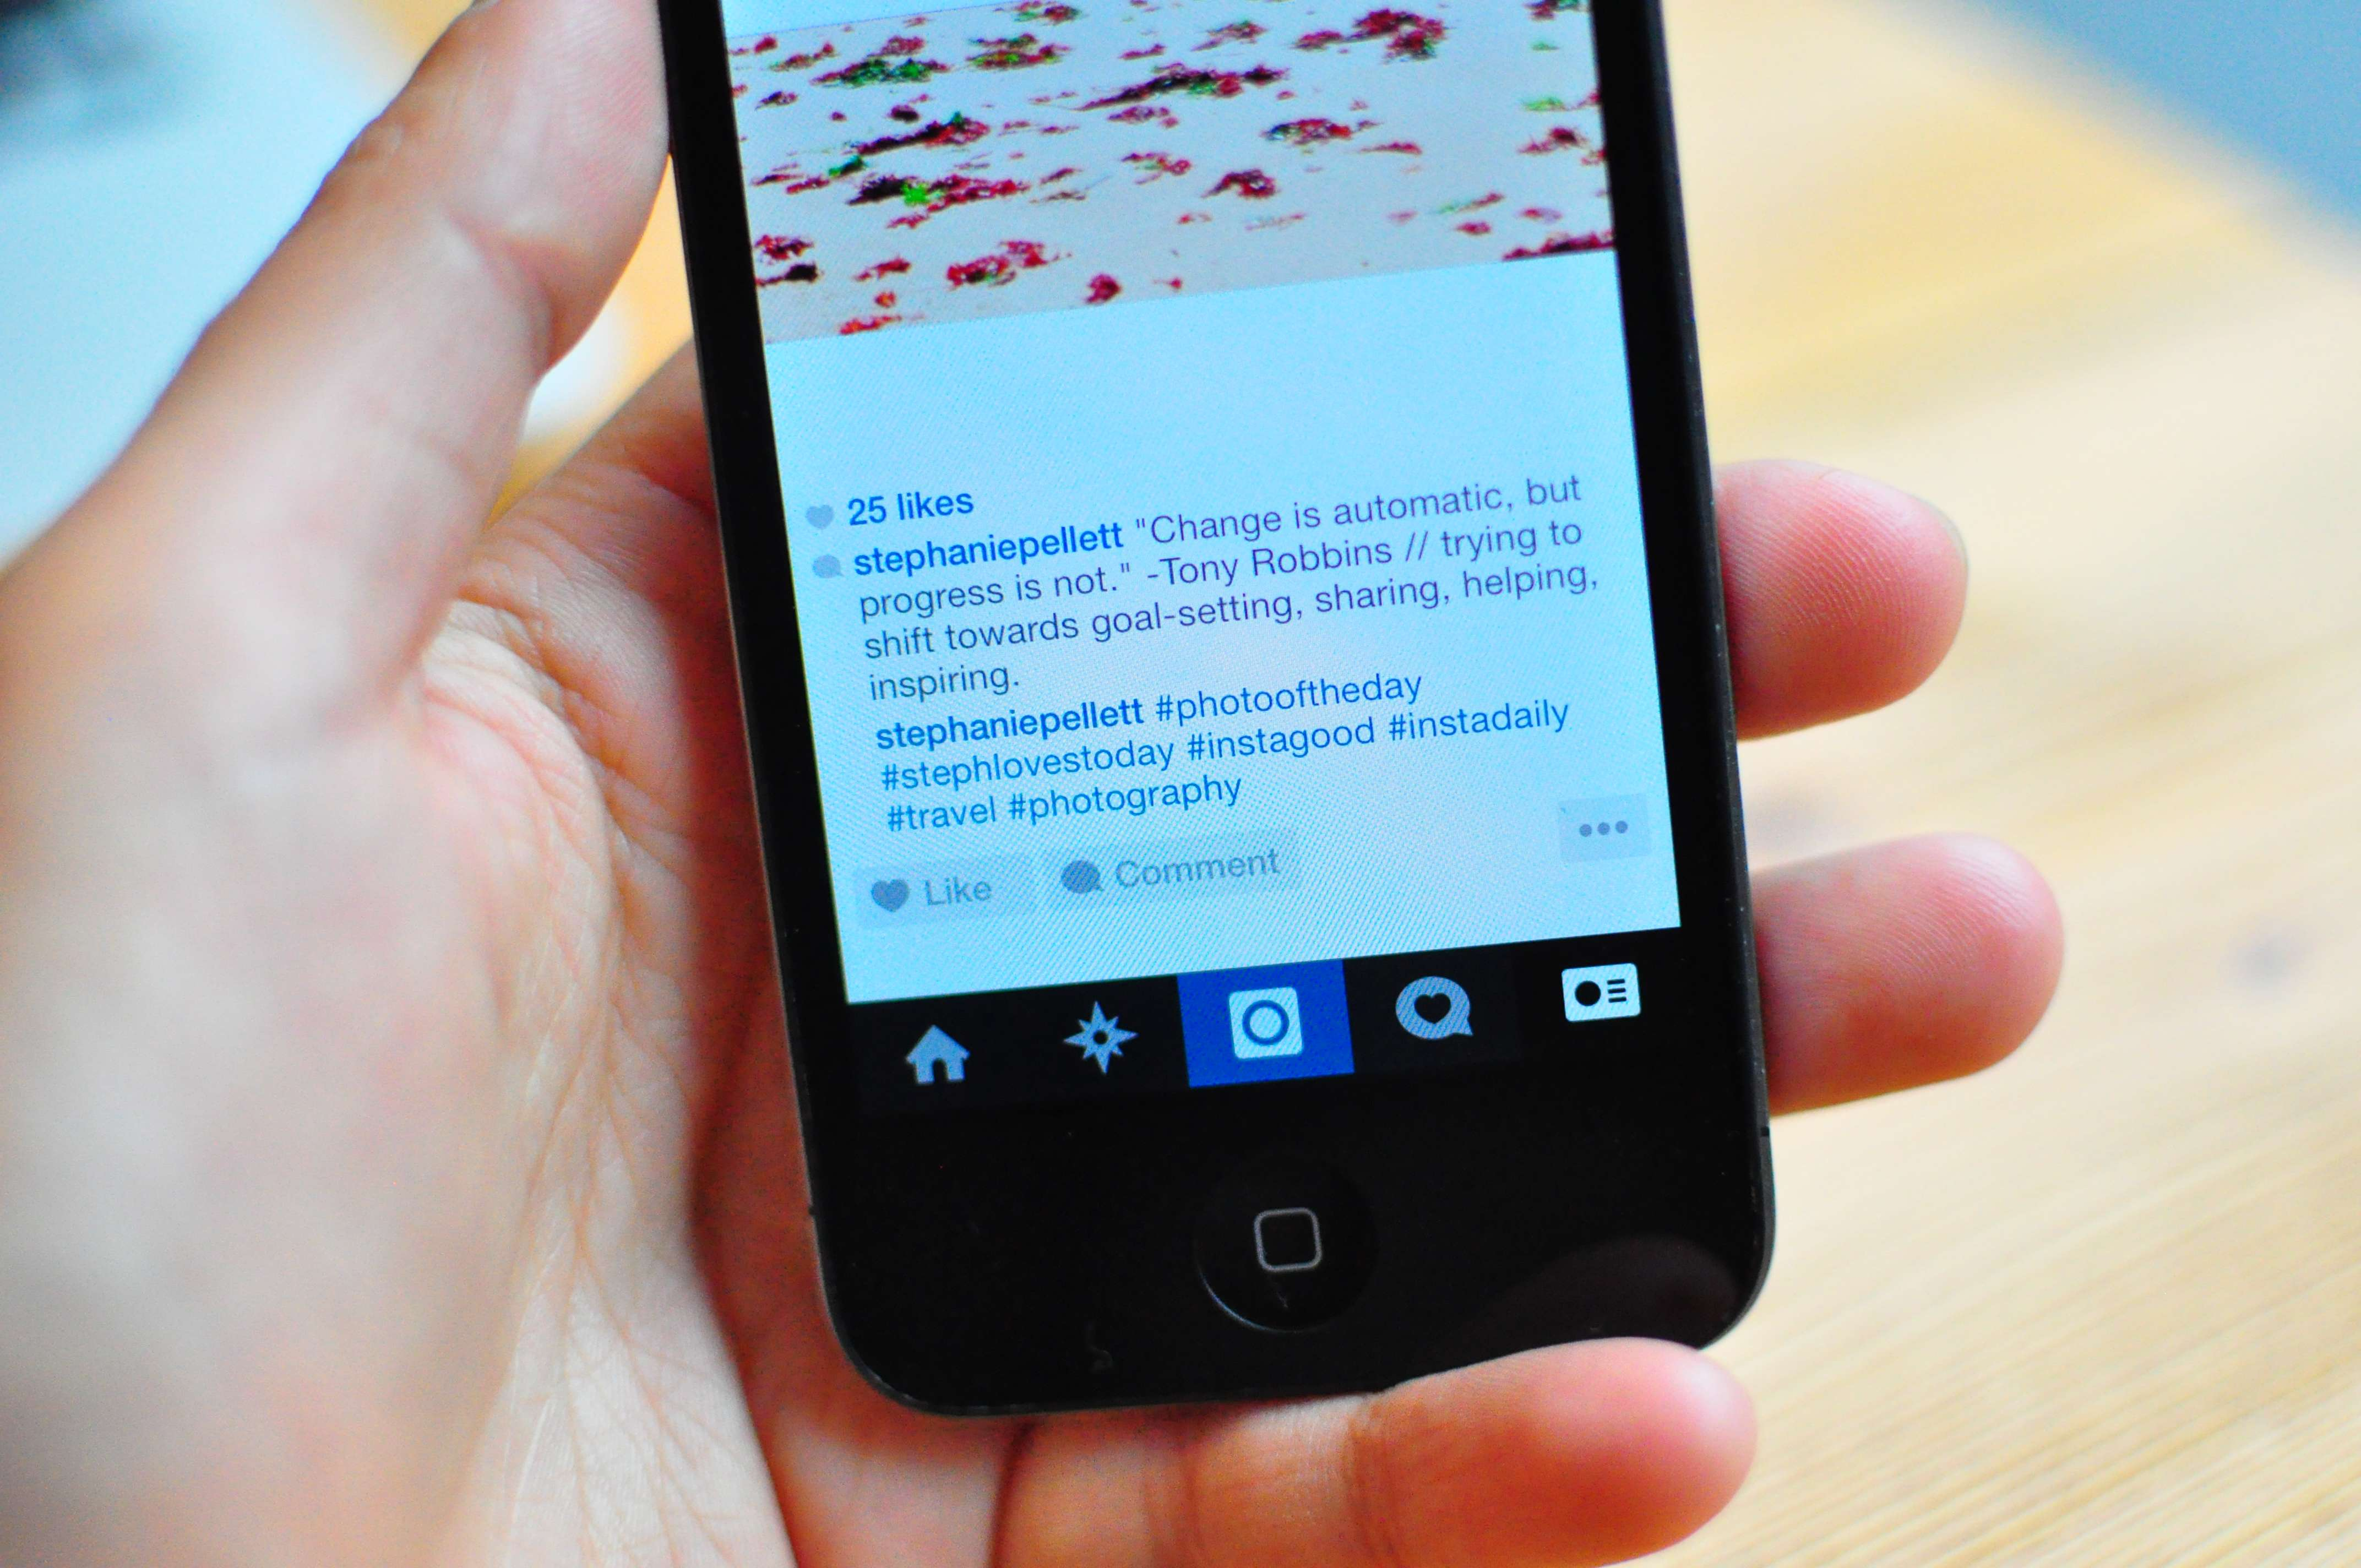 Instagram Tips: How To Fix an Instagram Hashtag When a Photo Doesn't